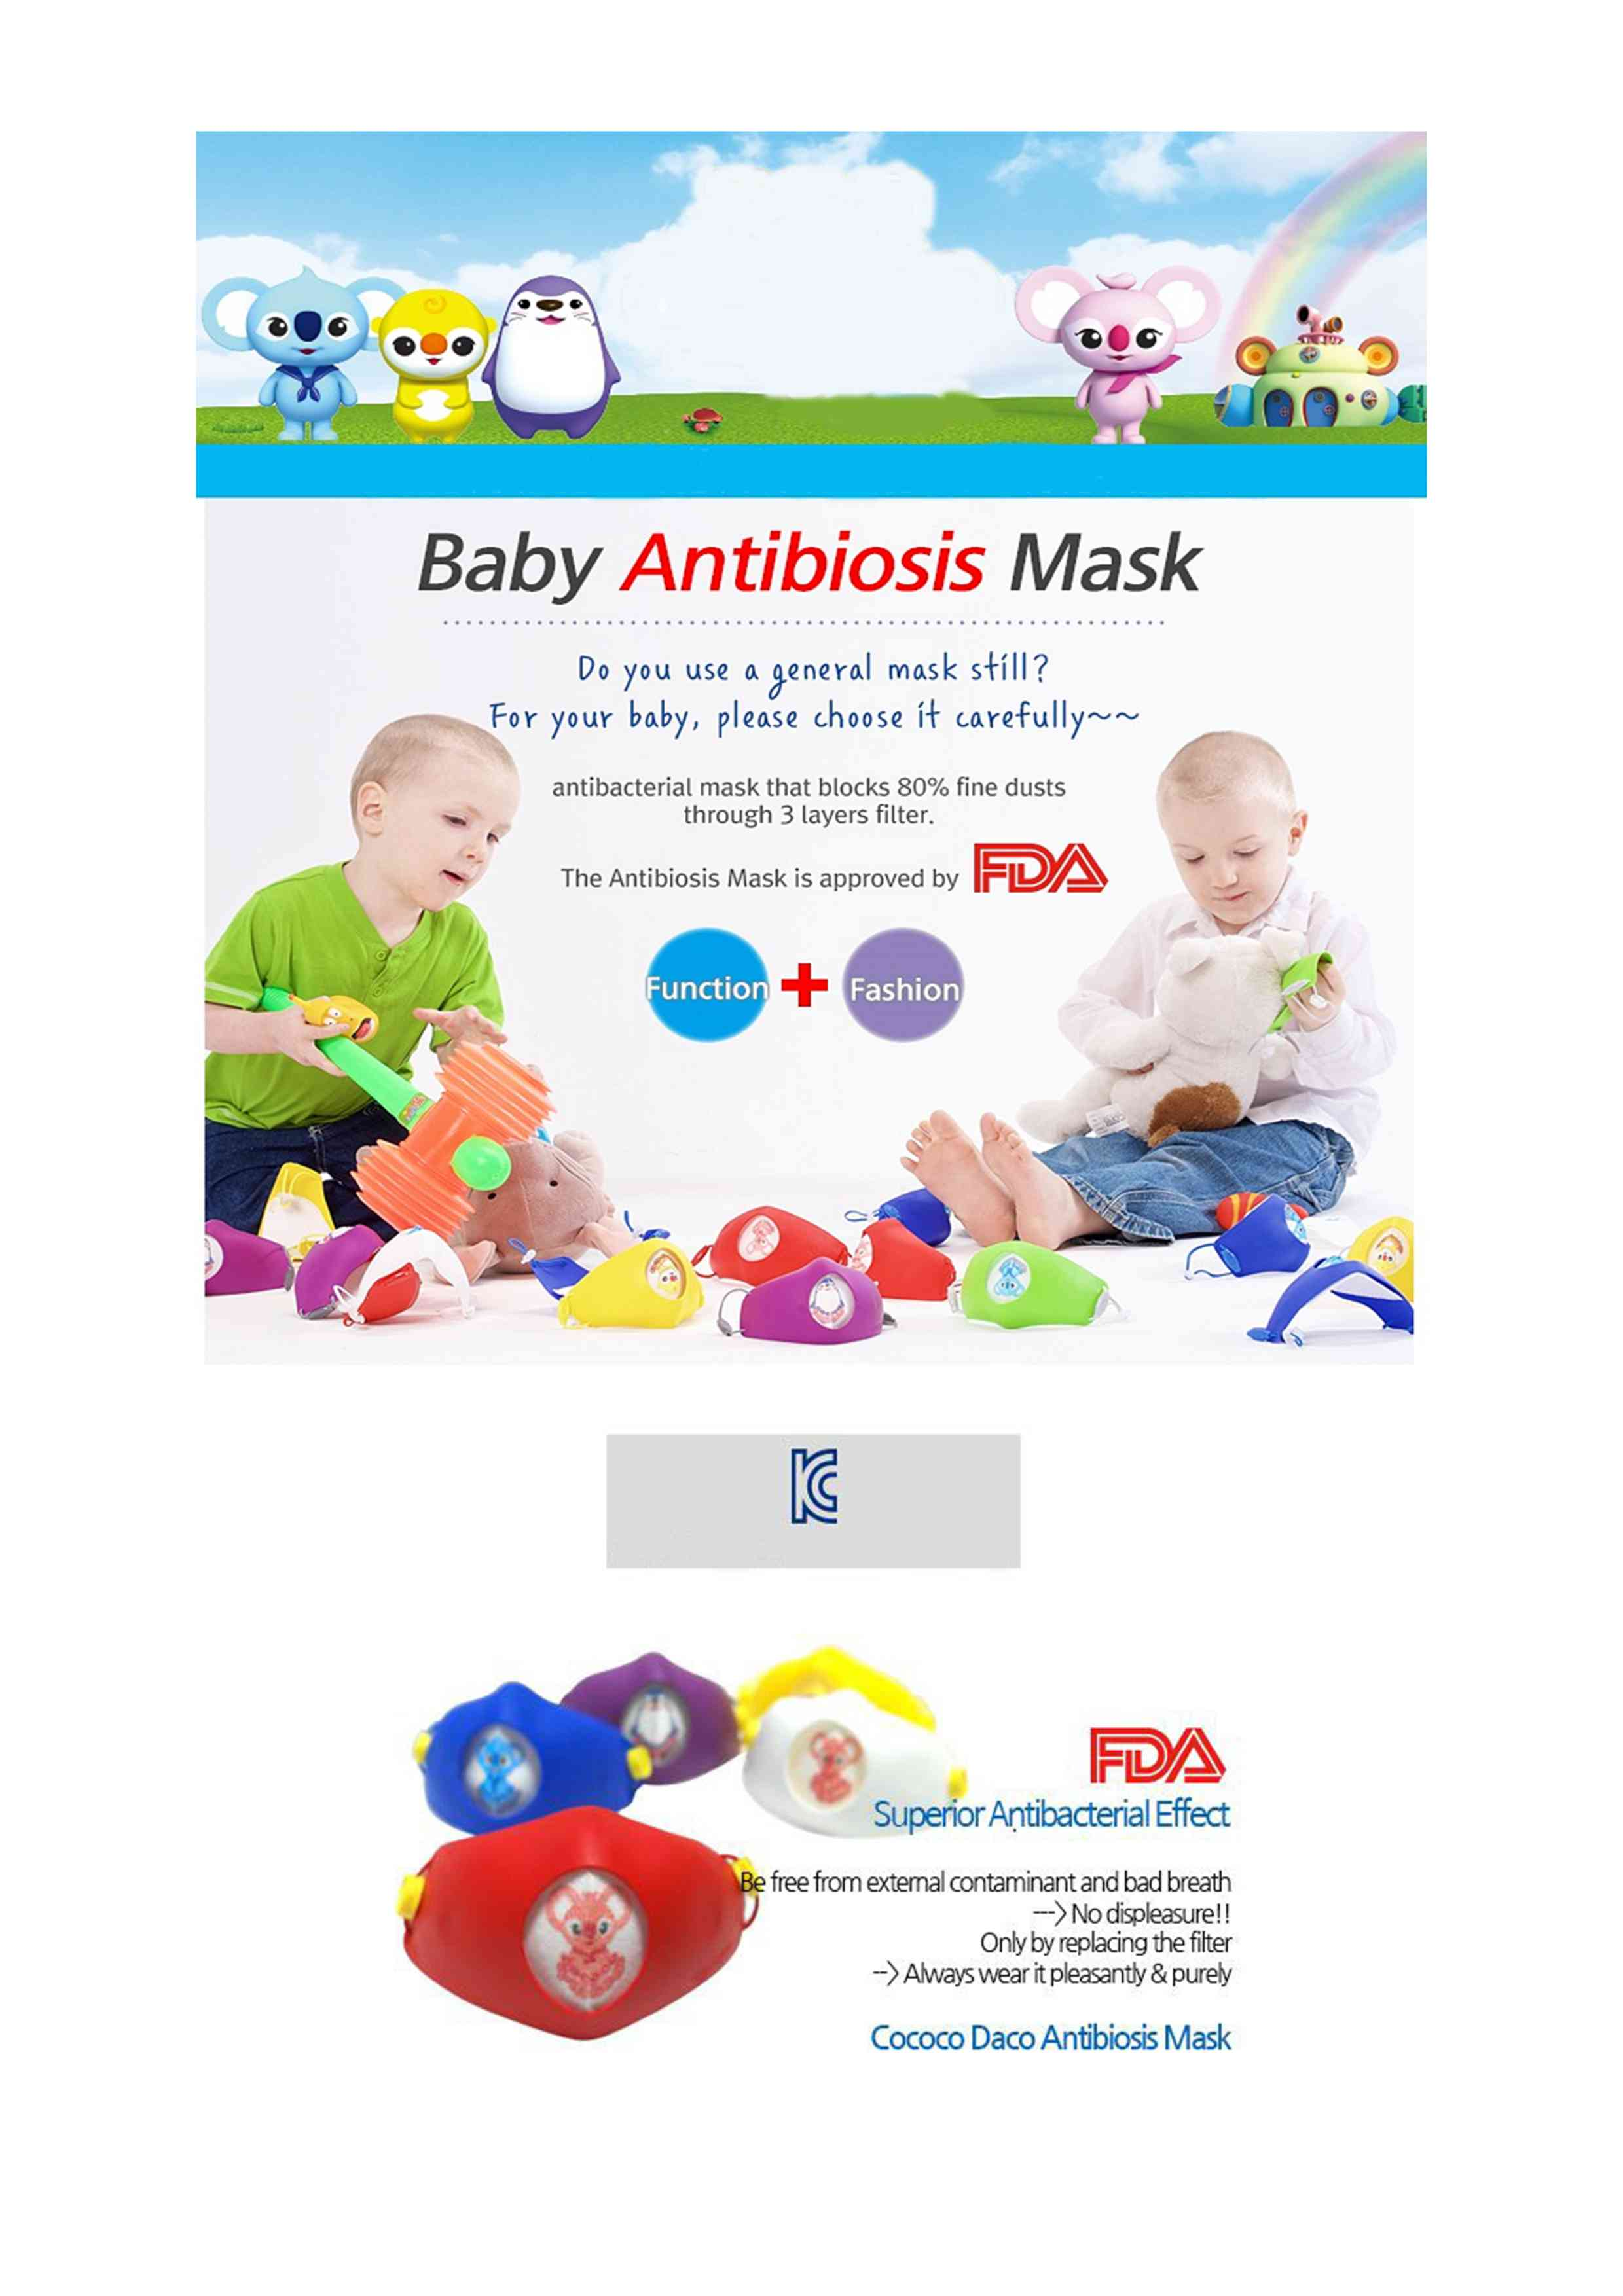 Baby Antibiosis Mask